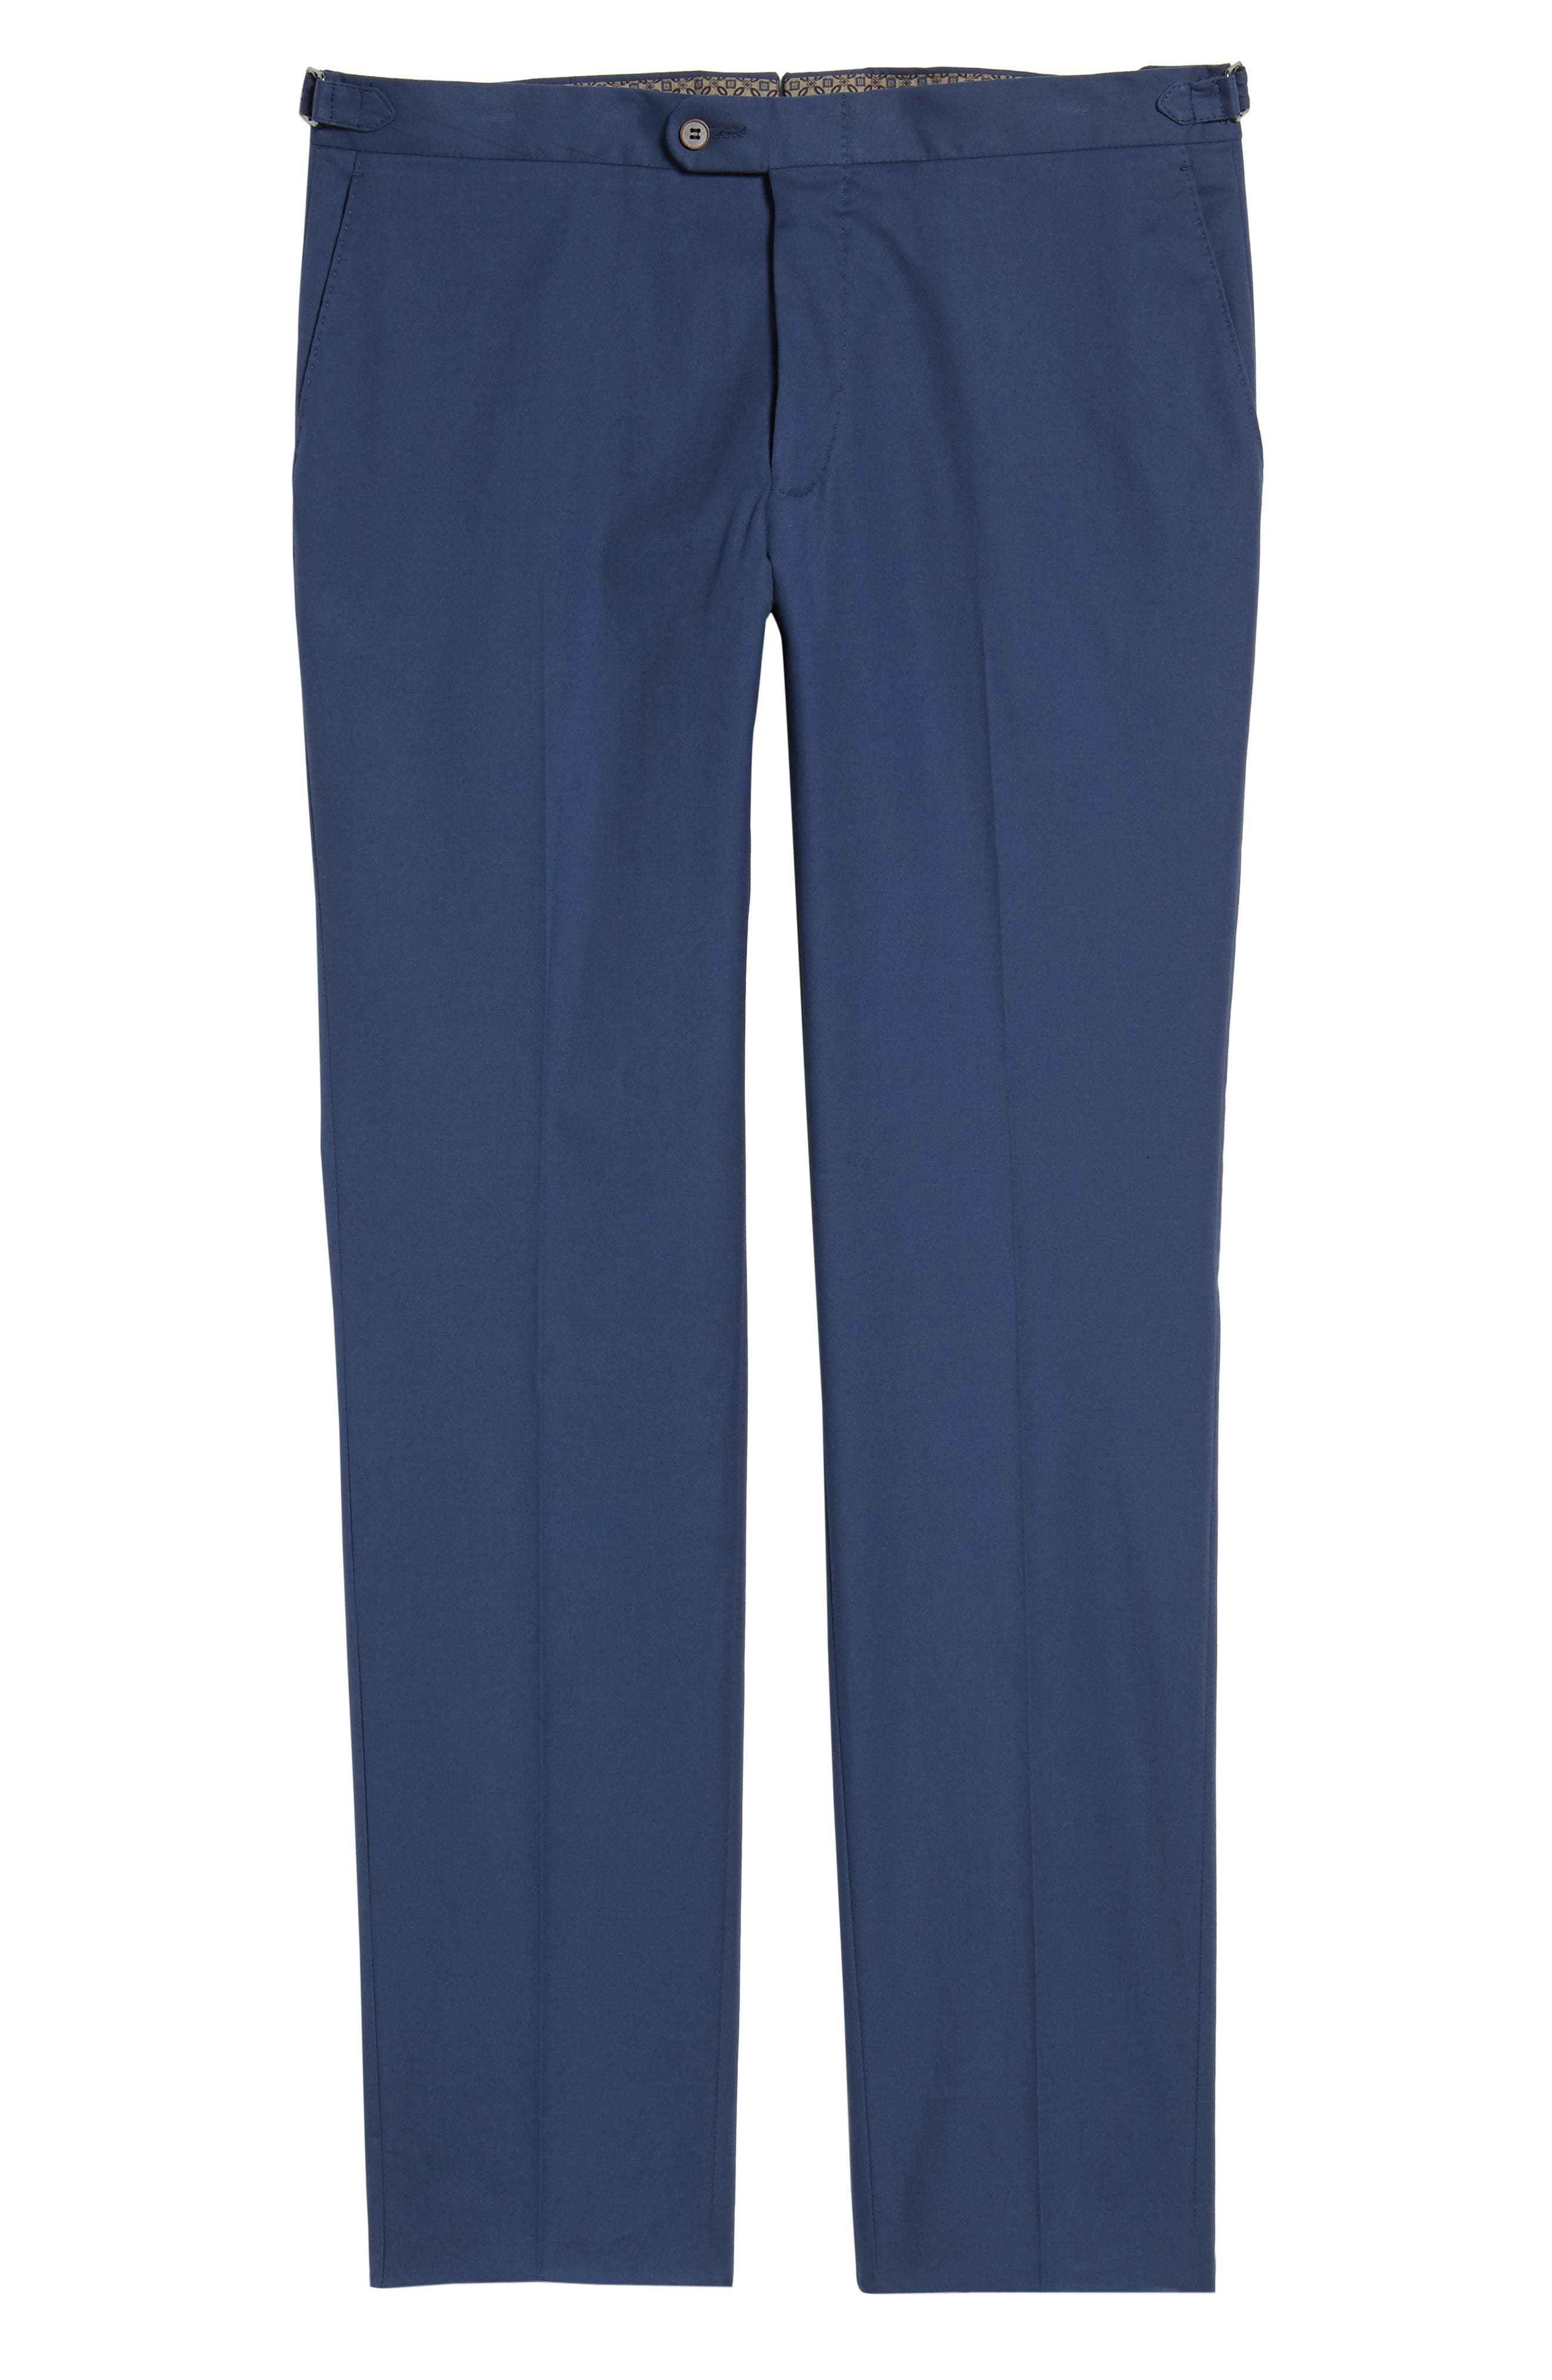 Flat Front Solid Stretch Cotton Trousers,                             Alternate thumbnail 6, color,                             422